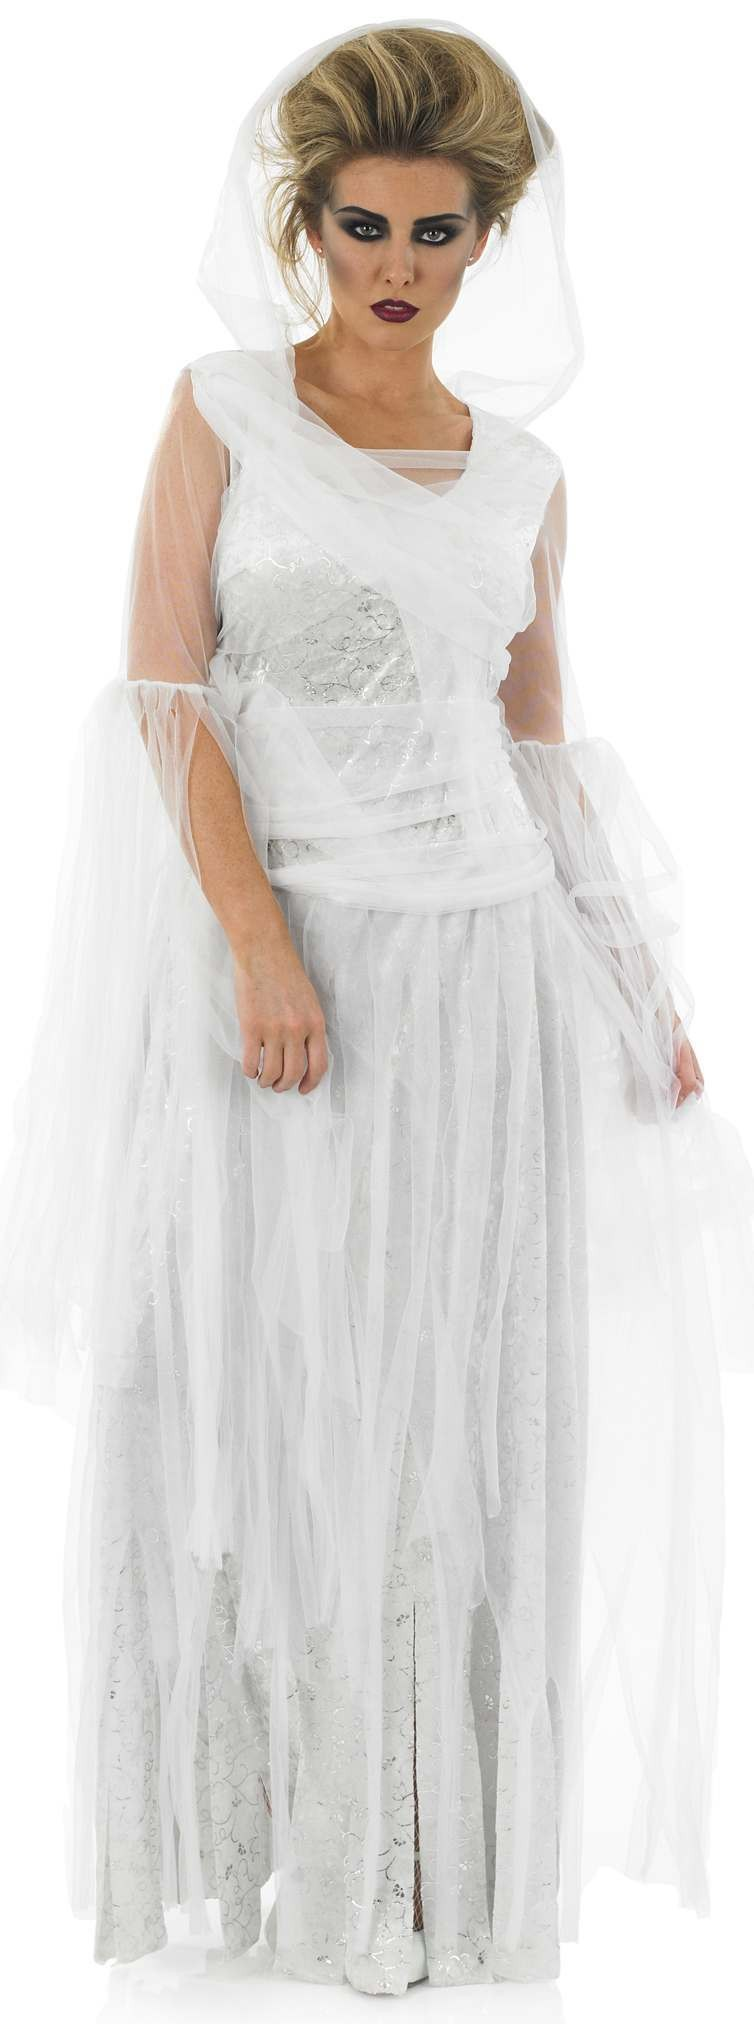 Ladies White (White Haunting Ghost)Fancy Dress Costume